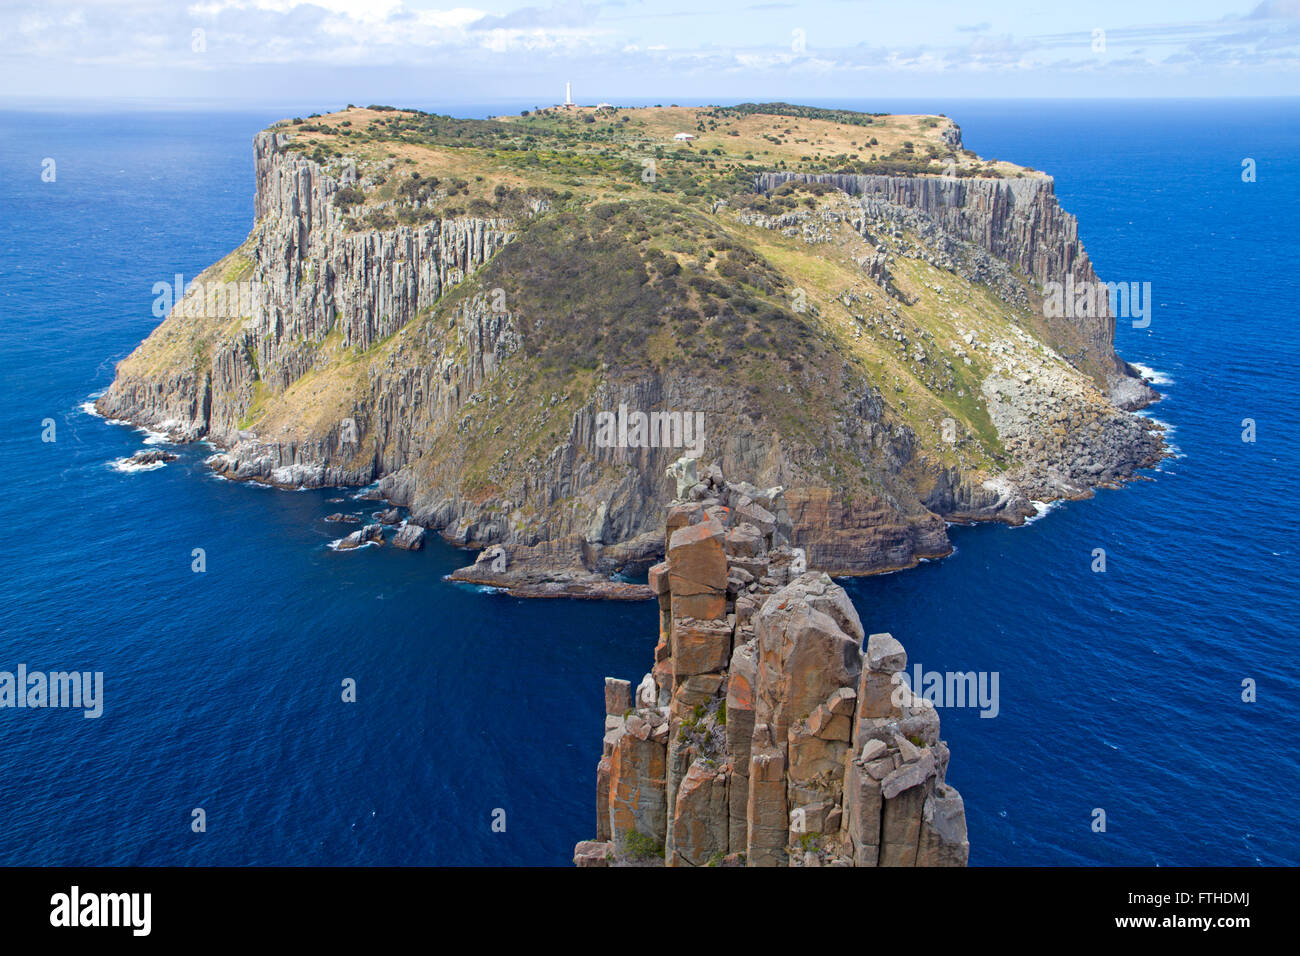 Tasman Island and the Blade at the tip of Cape Pillar - Stock Image